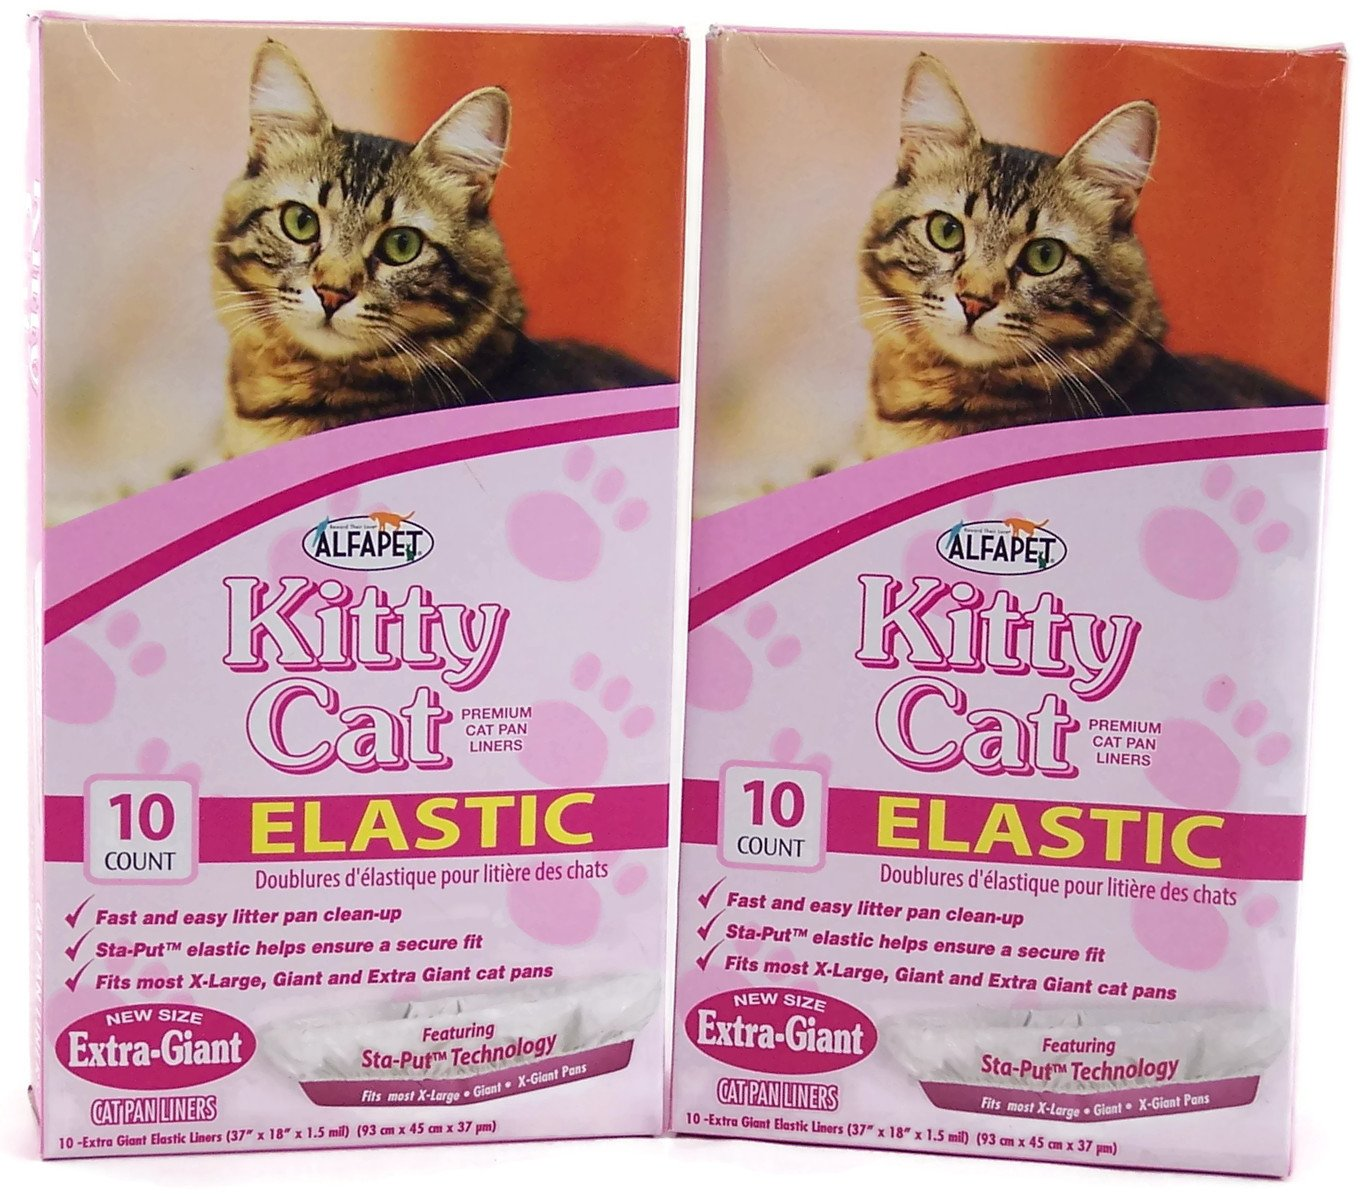 Alfapet Kitty Cat Extra-giant Elastic Sta-put Litter Box Liners 10 Ct (Pack of 2)